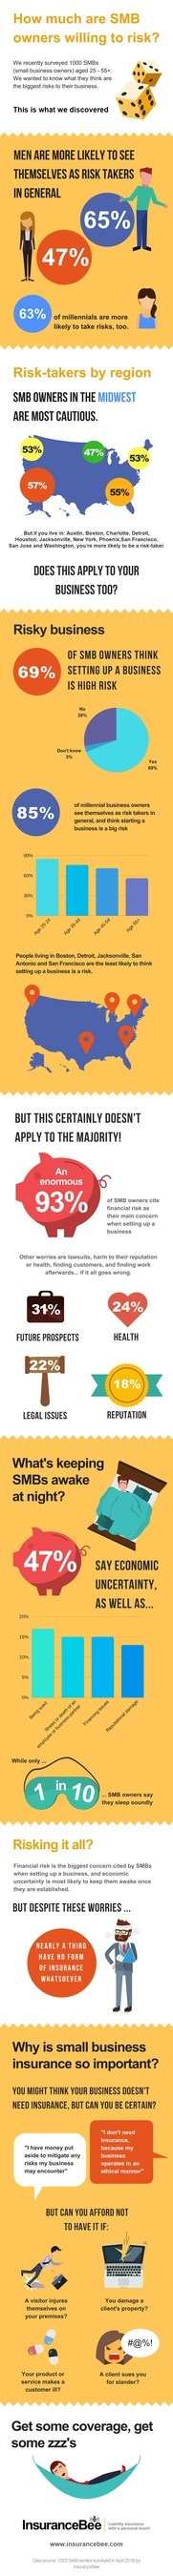 InsuranceBee SMB Owners Risk Infographic